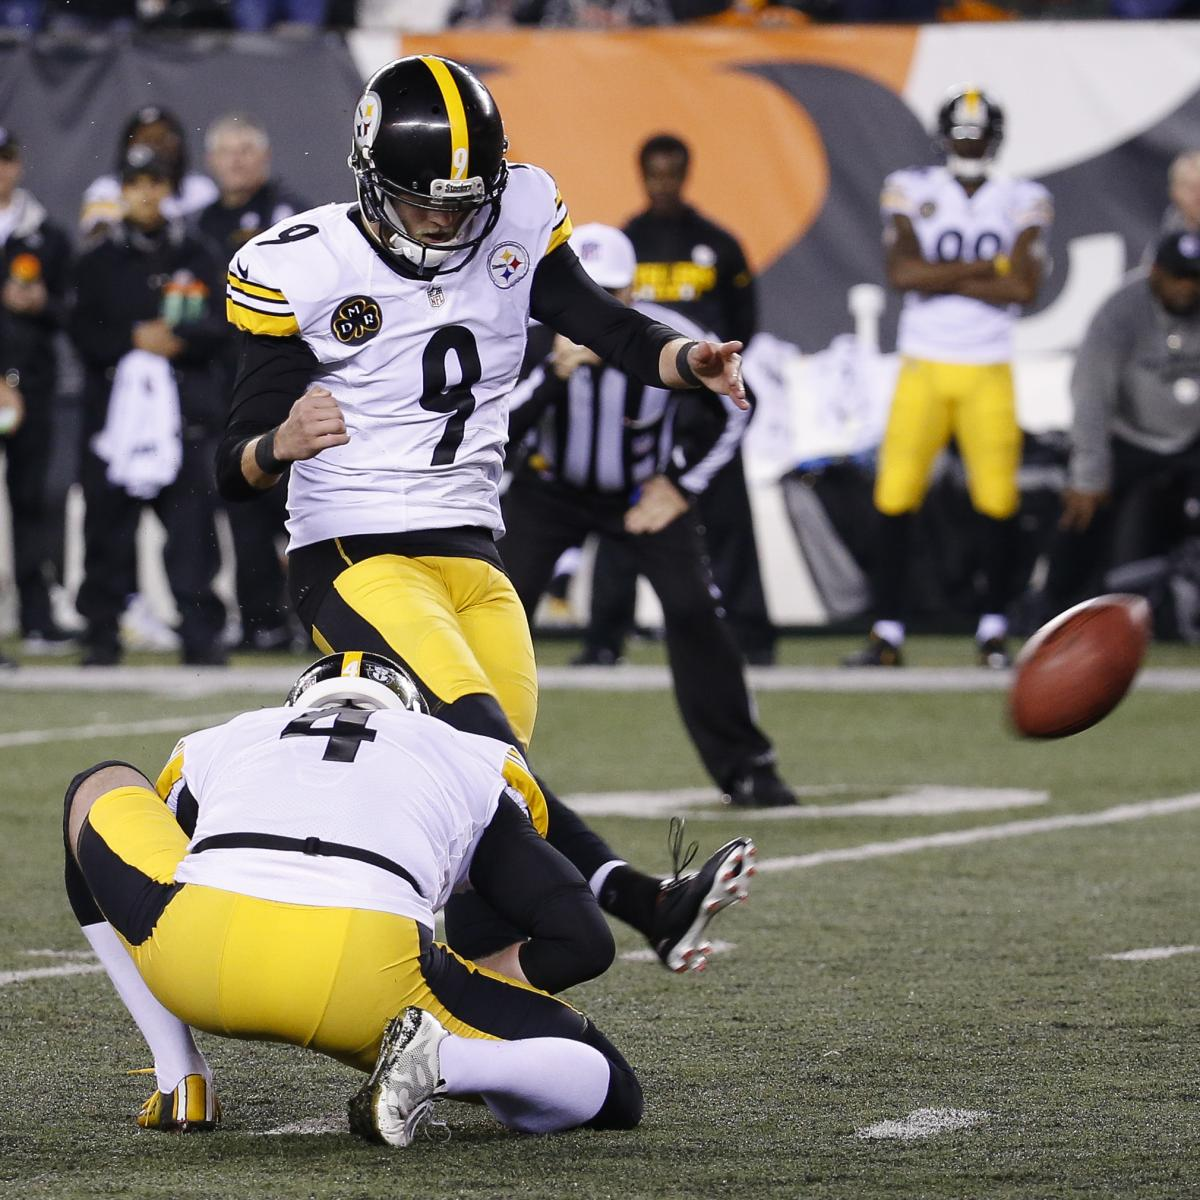 Chris Boswell Says Bengals Tried to Injure Him Before Game-Winning Field Goal